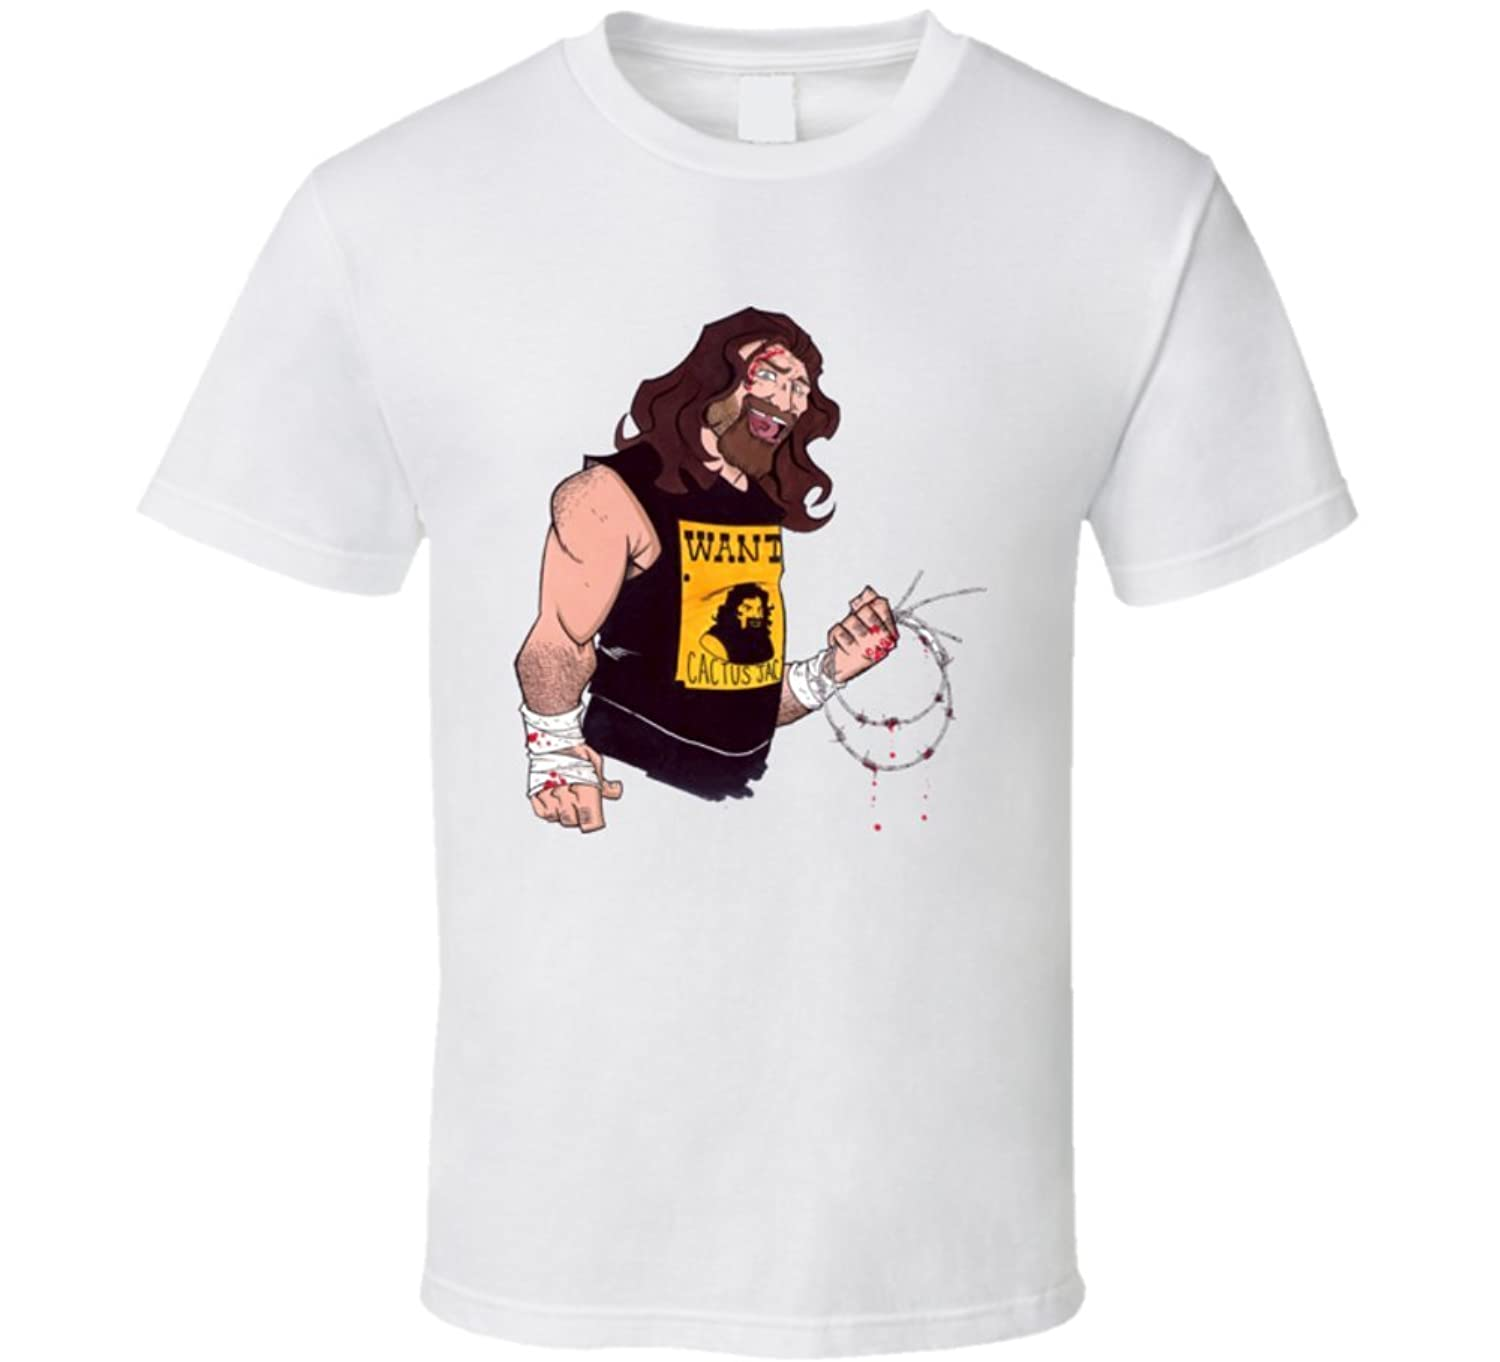 Cactus Jack Rick Foley Wrestler,Wanted Dead or Alive Cartoon T Shirt